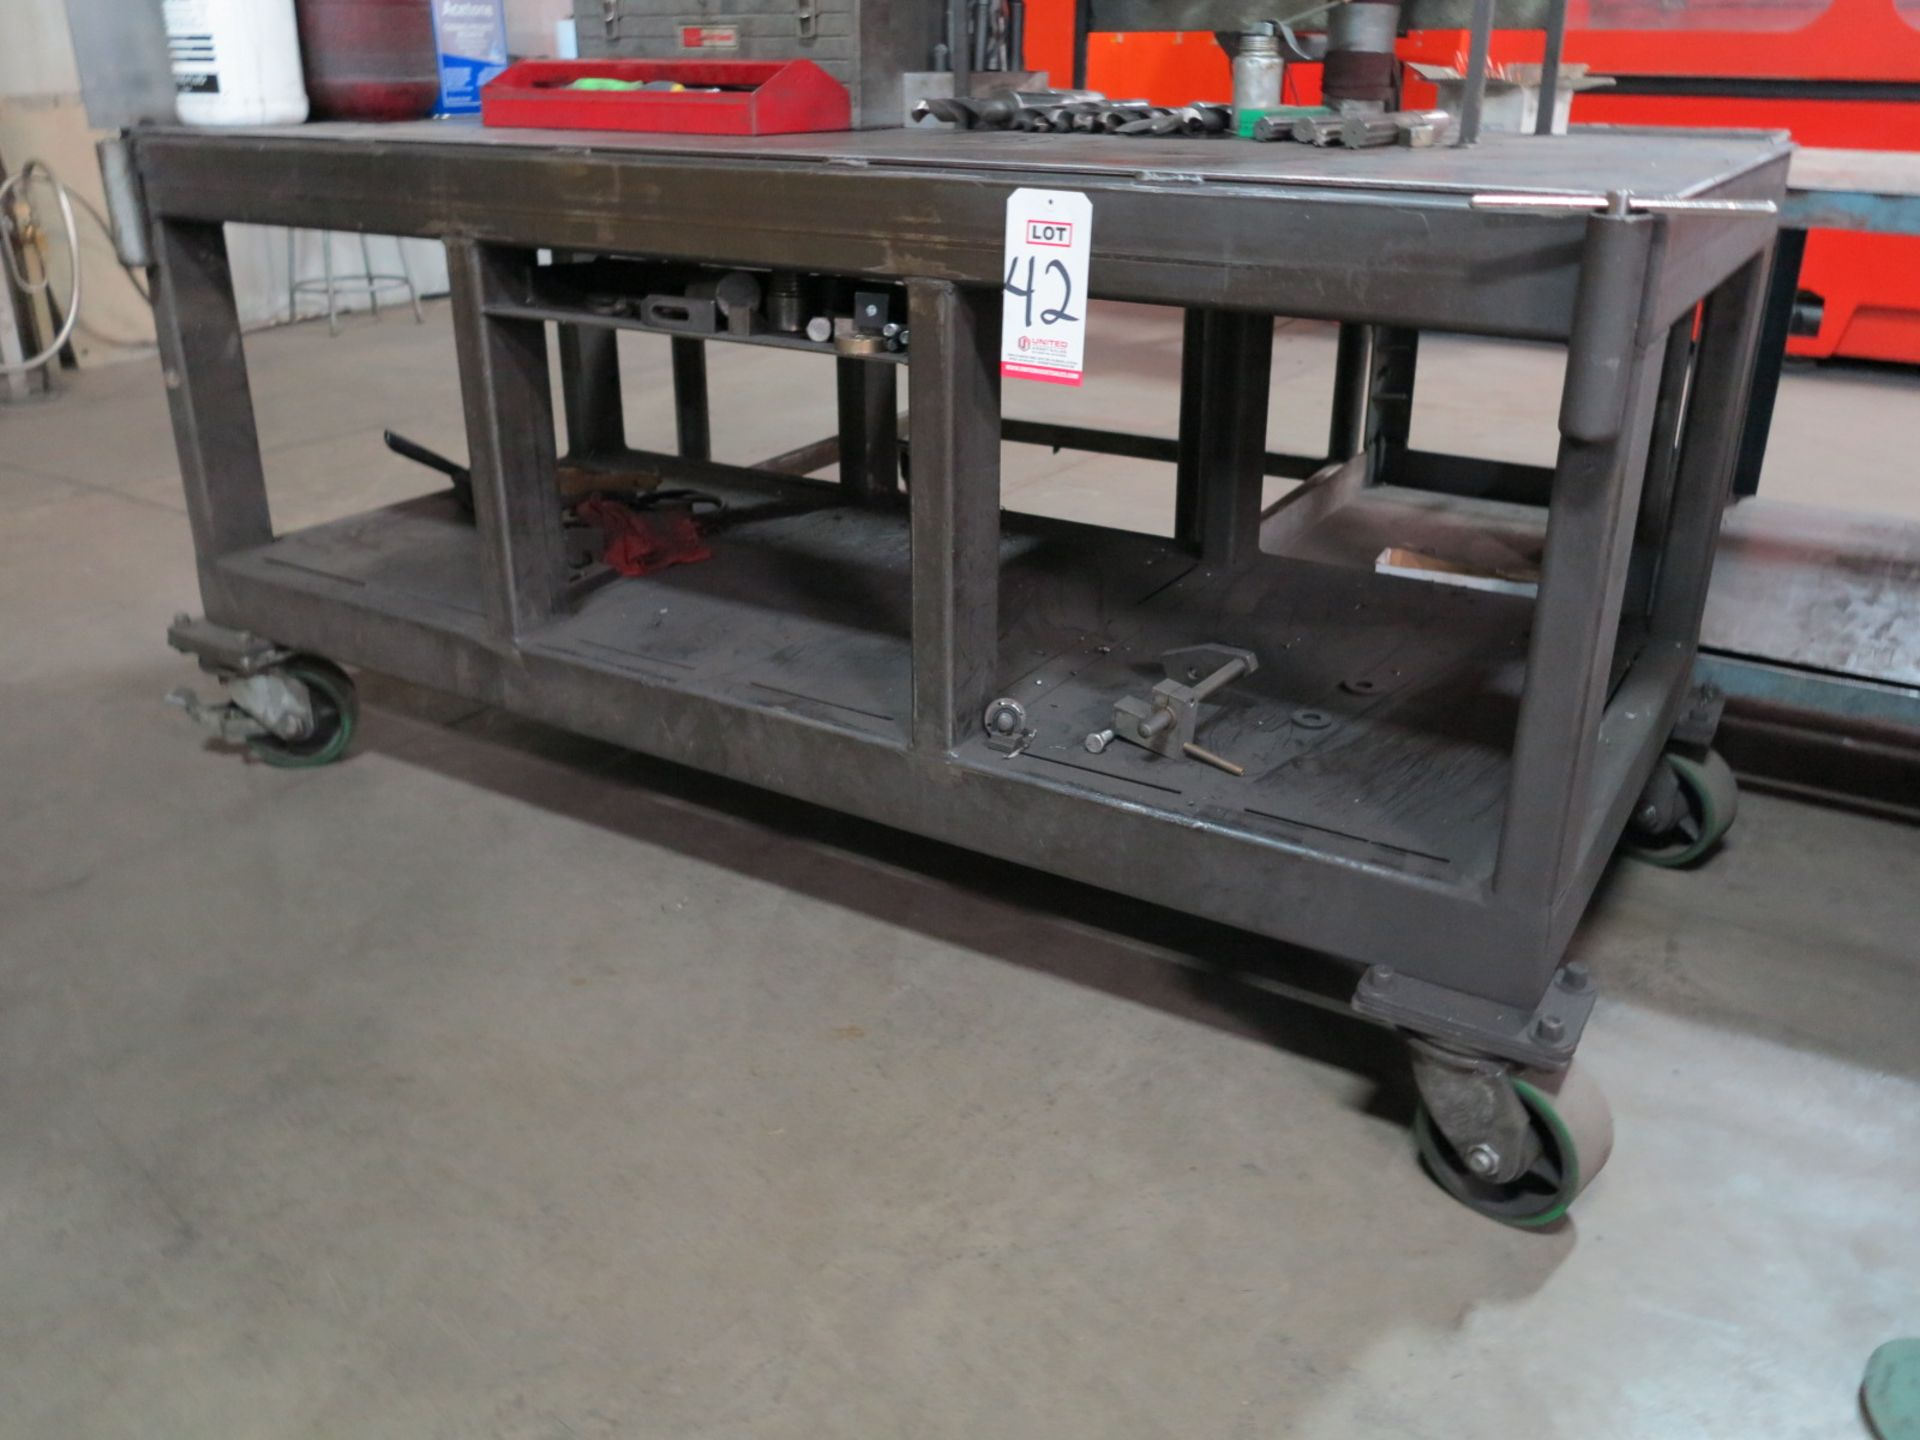 """Lot 42 - 6' X 32"""" HEAVY DUTY WORK BENCH ON CASTERS, CONTENTS NOT INCLUDED"""